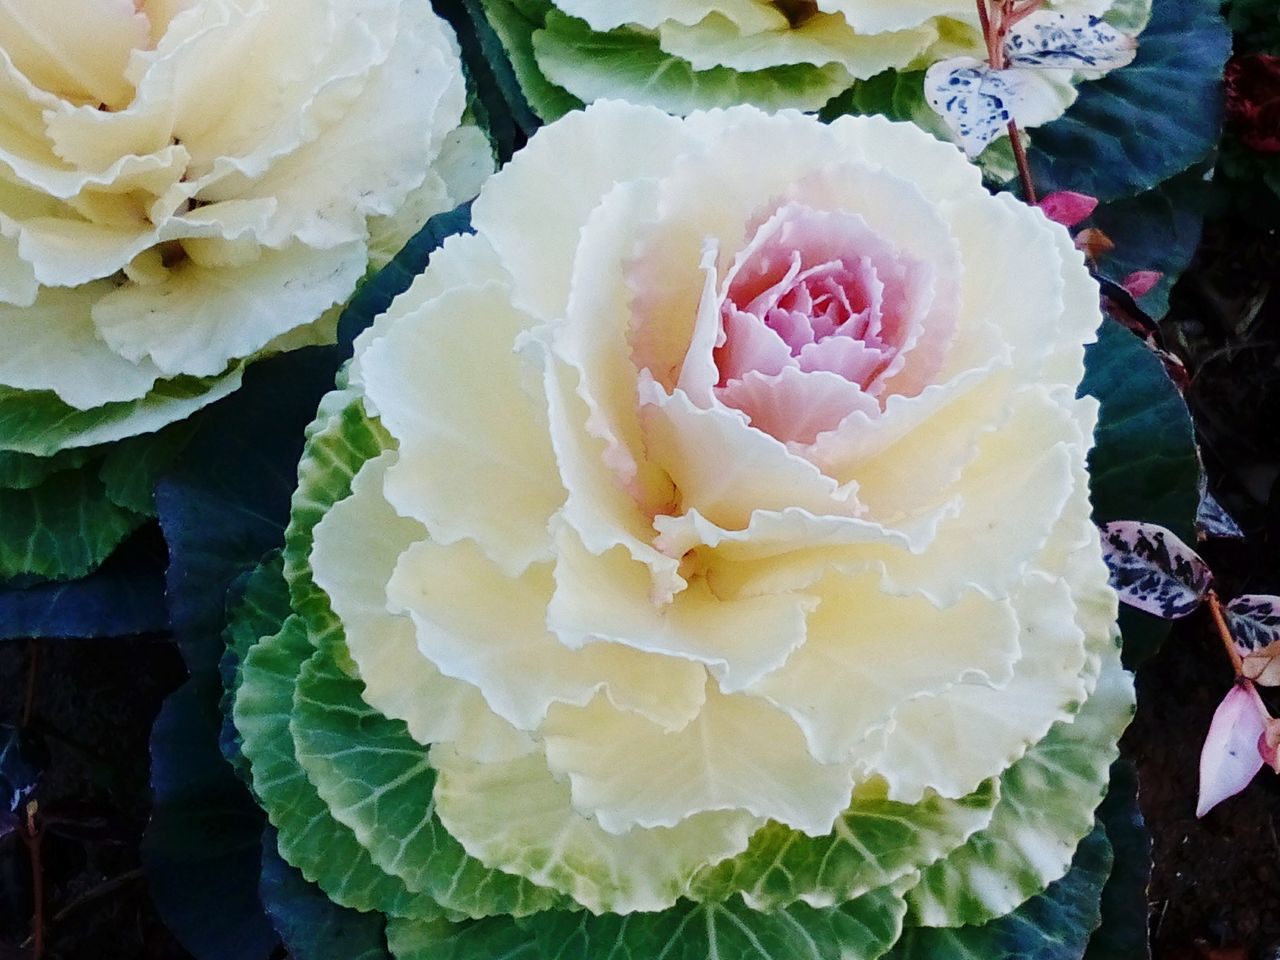 flower, freshness, petal, flower head, food and drink, no people, close-up, beauty in nature, nature, rose - flower, day, food, fragility, outdoors